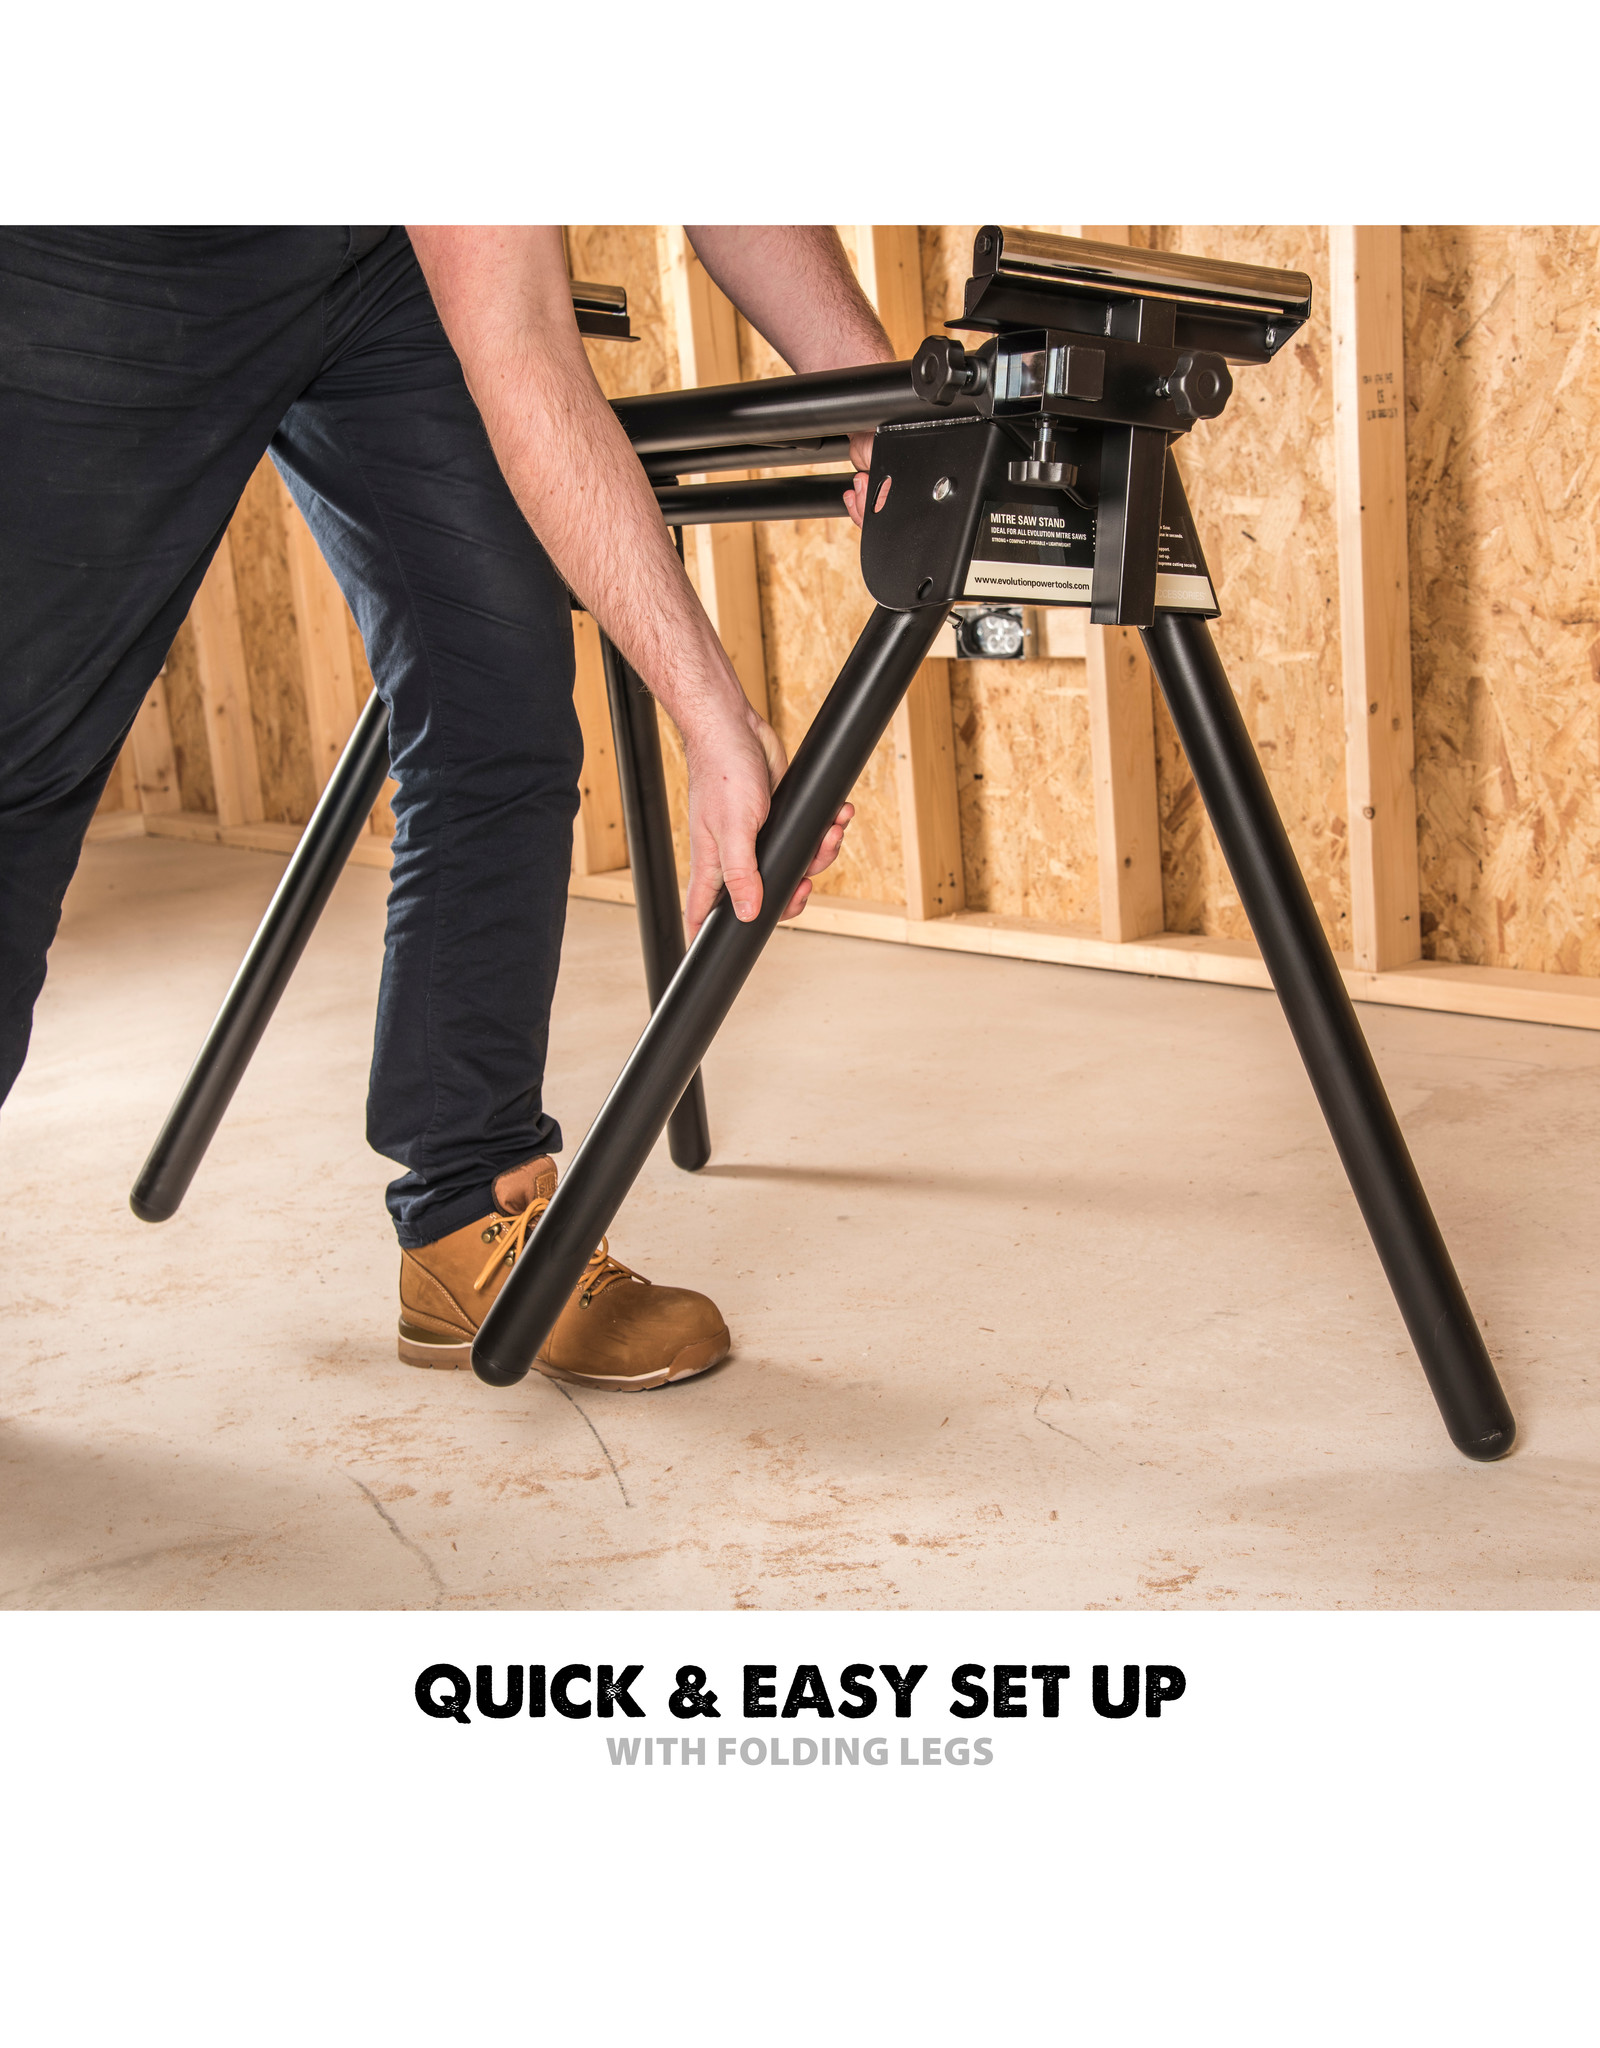 Evolution Power Tools Build Line MITRE SAW STAND